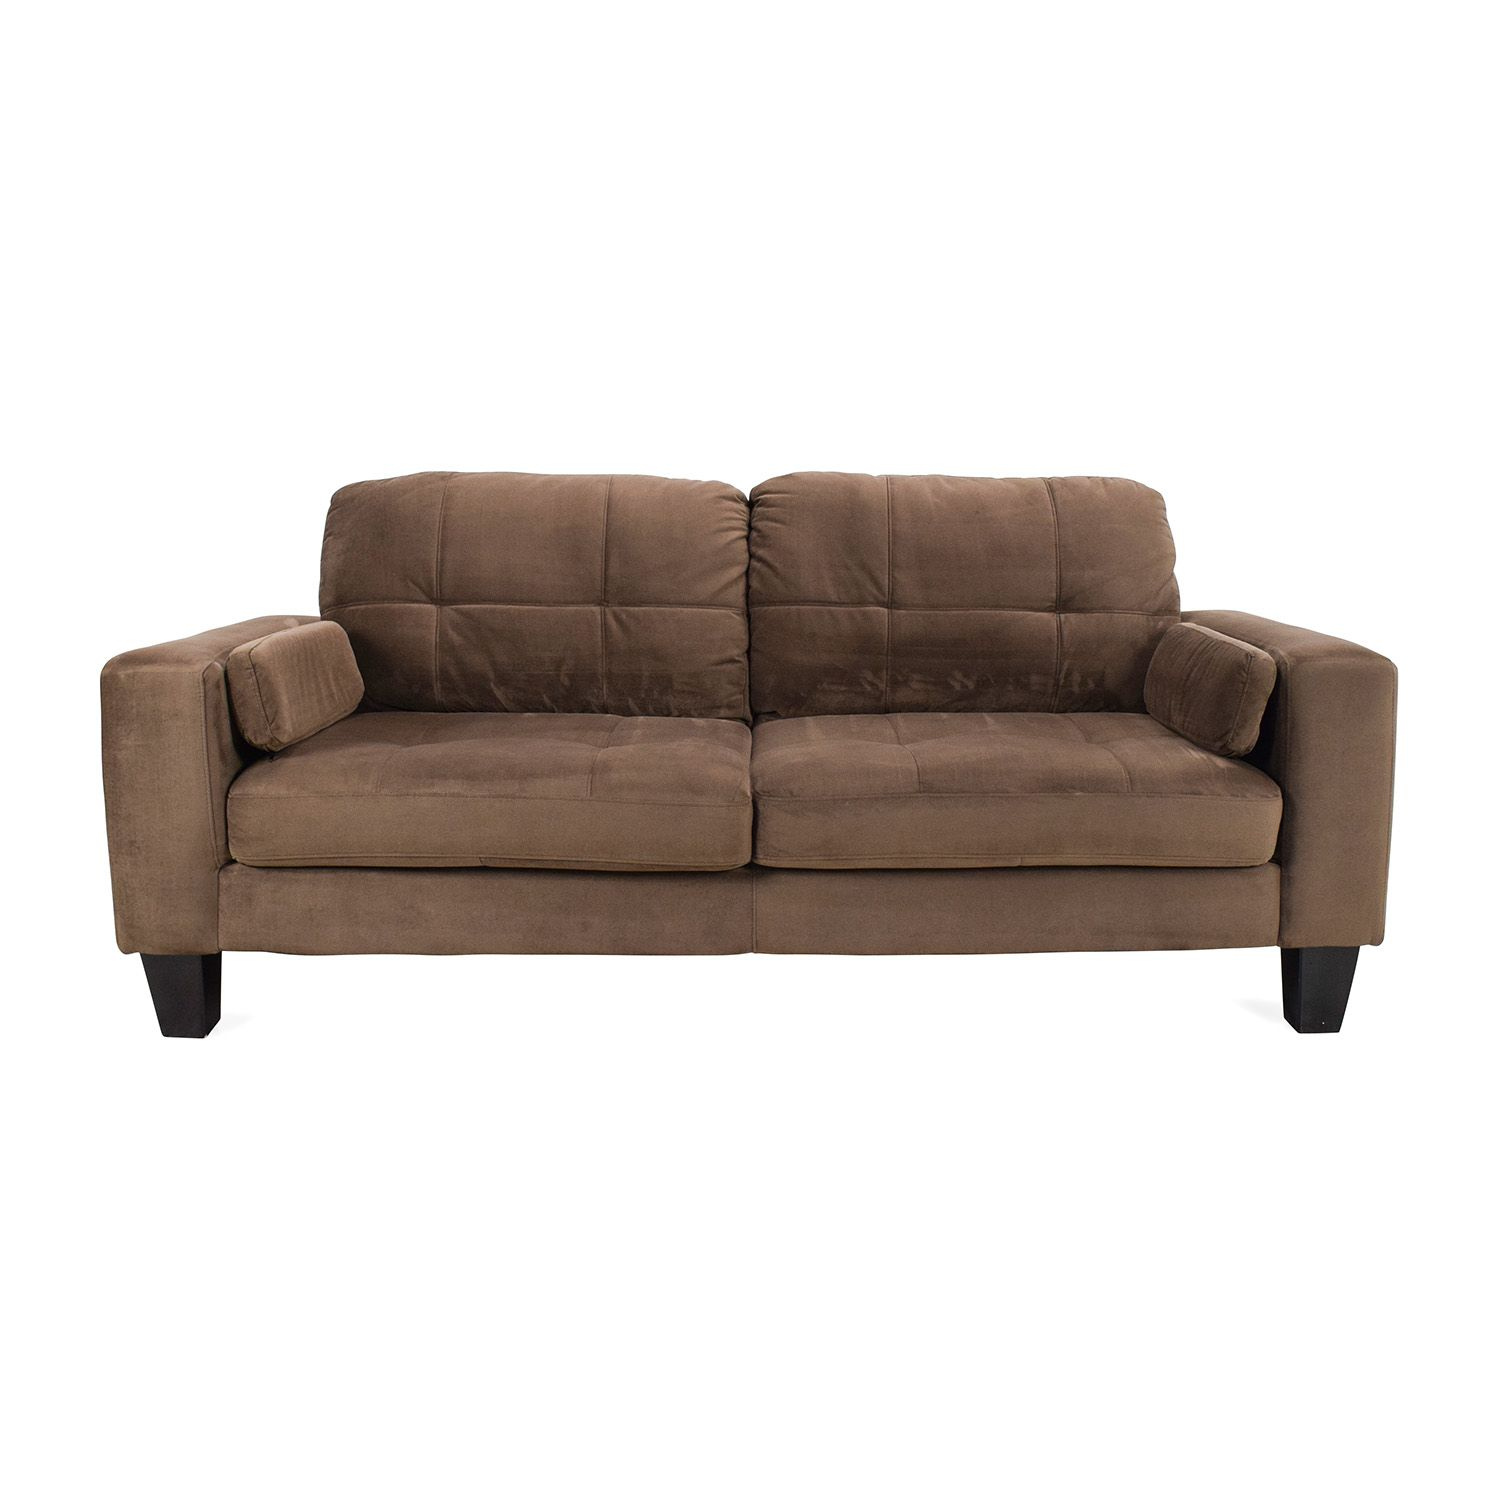 Cool Jennifer Sofas Fantastic 94 For And Couches Set With